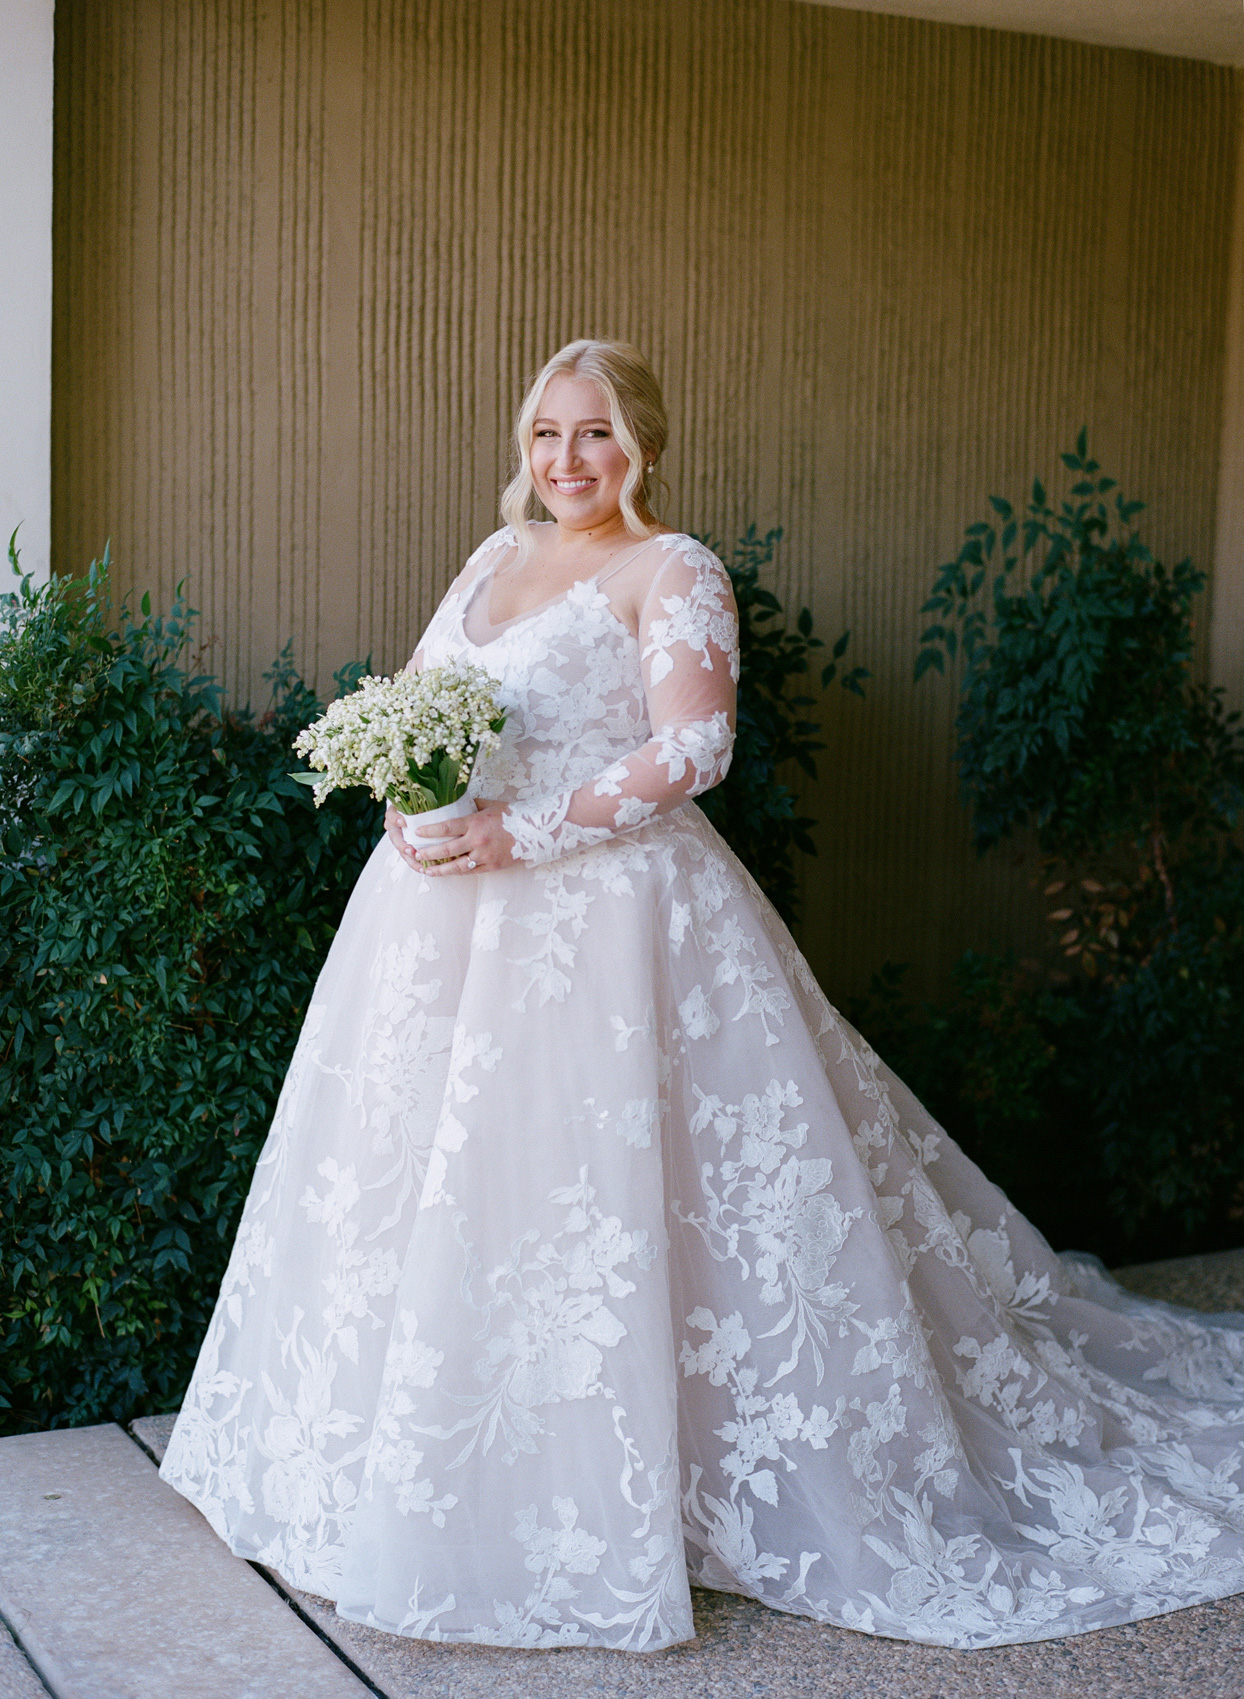 bride in a-line wedding dress with lace floral overlay